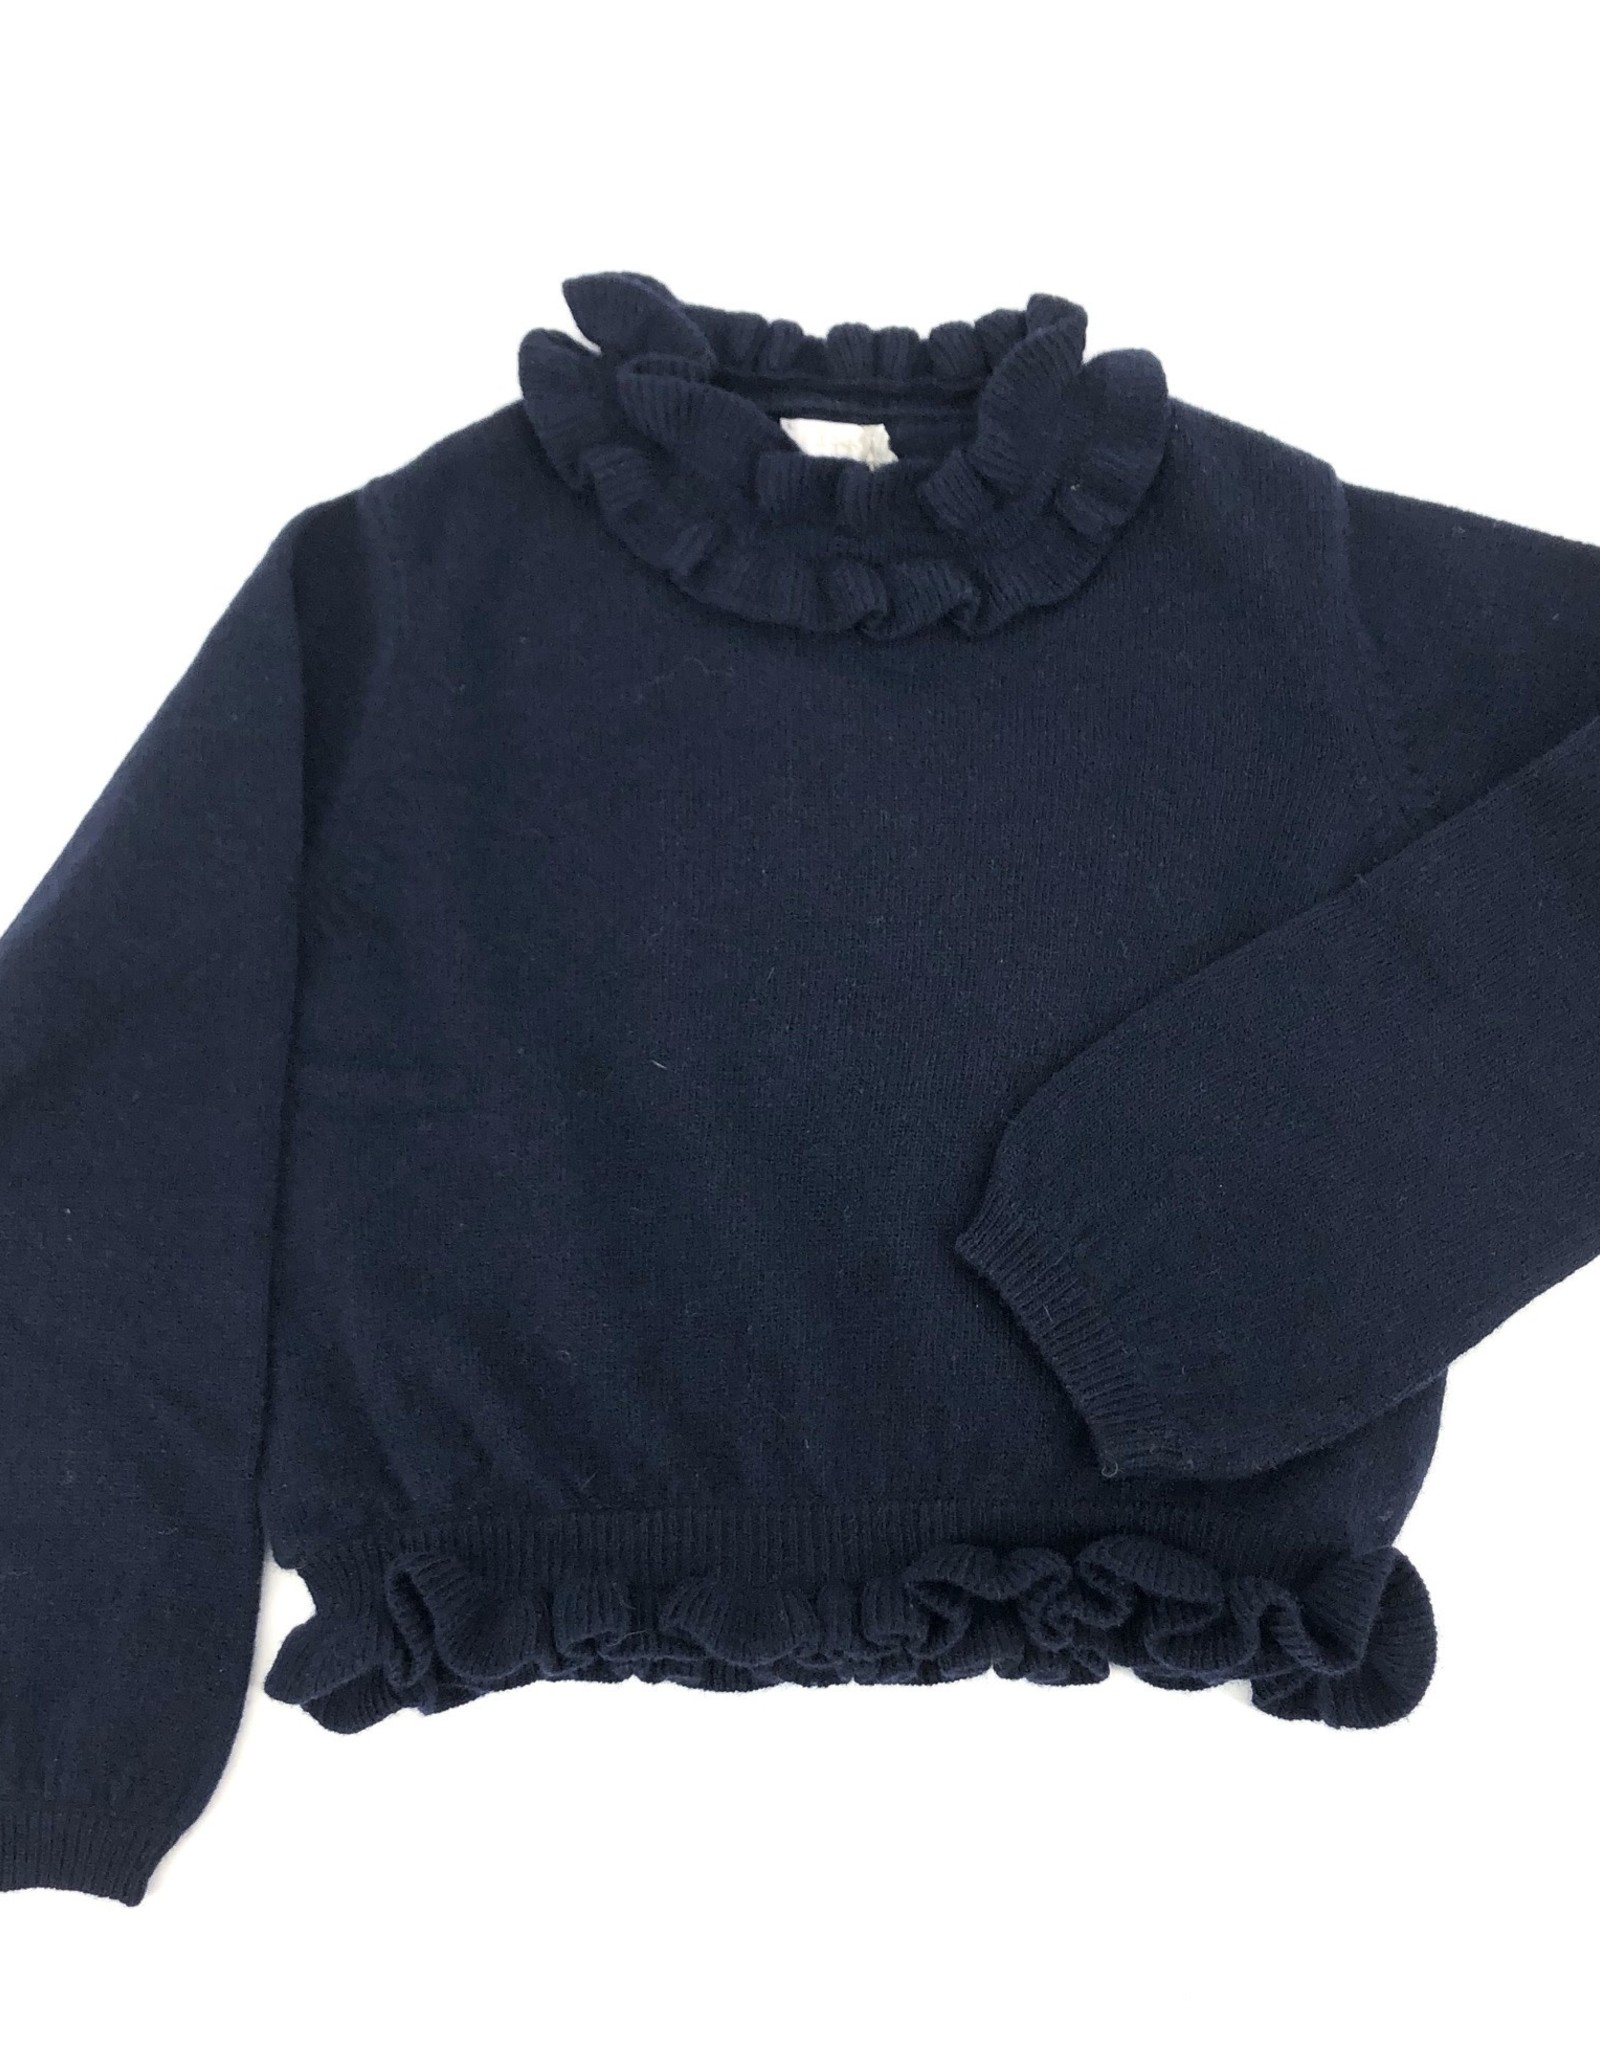 IL GUFO Sweater Navy Blue